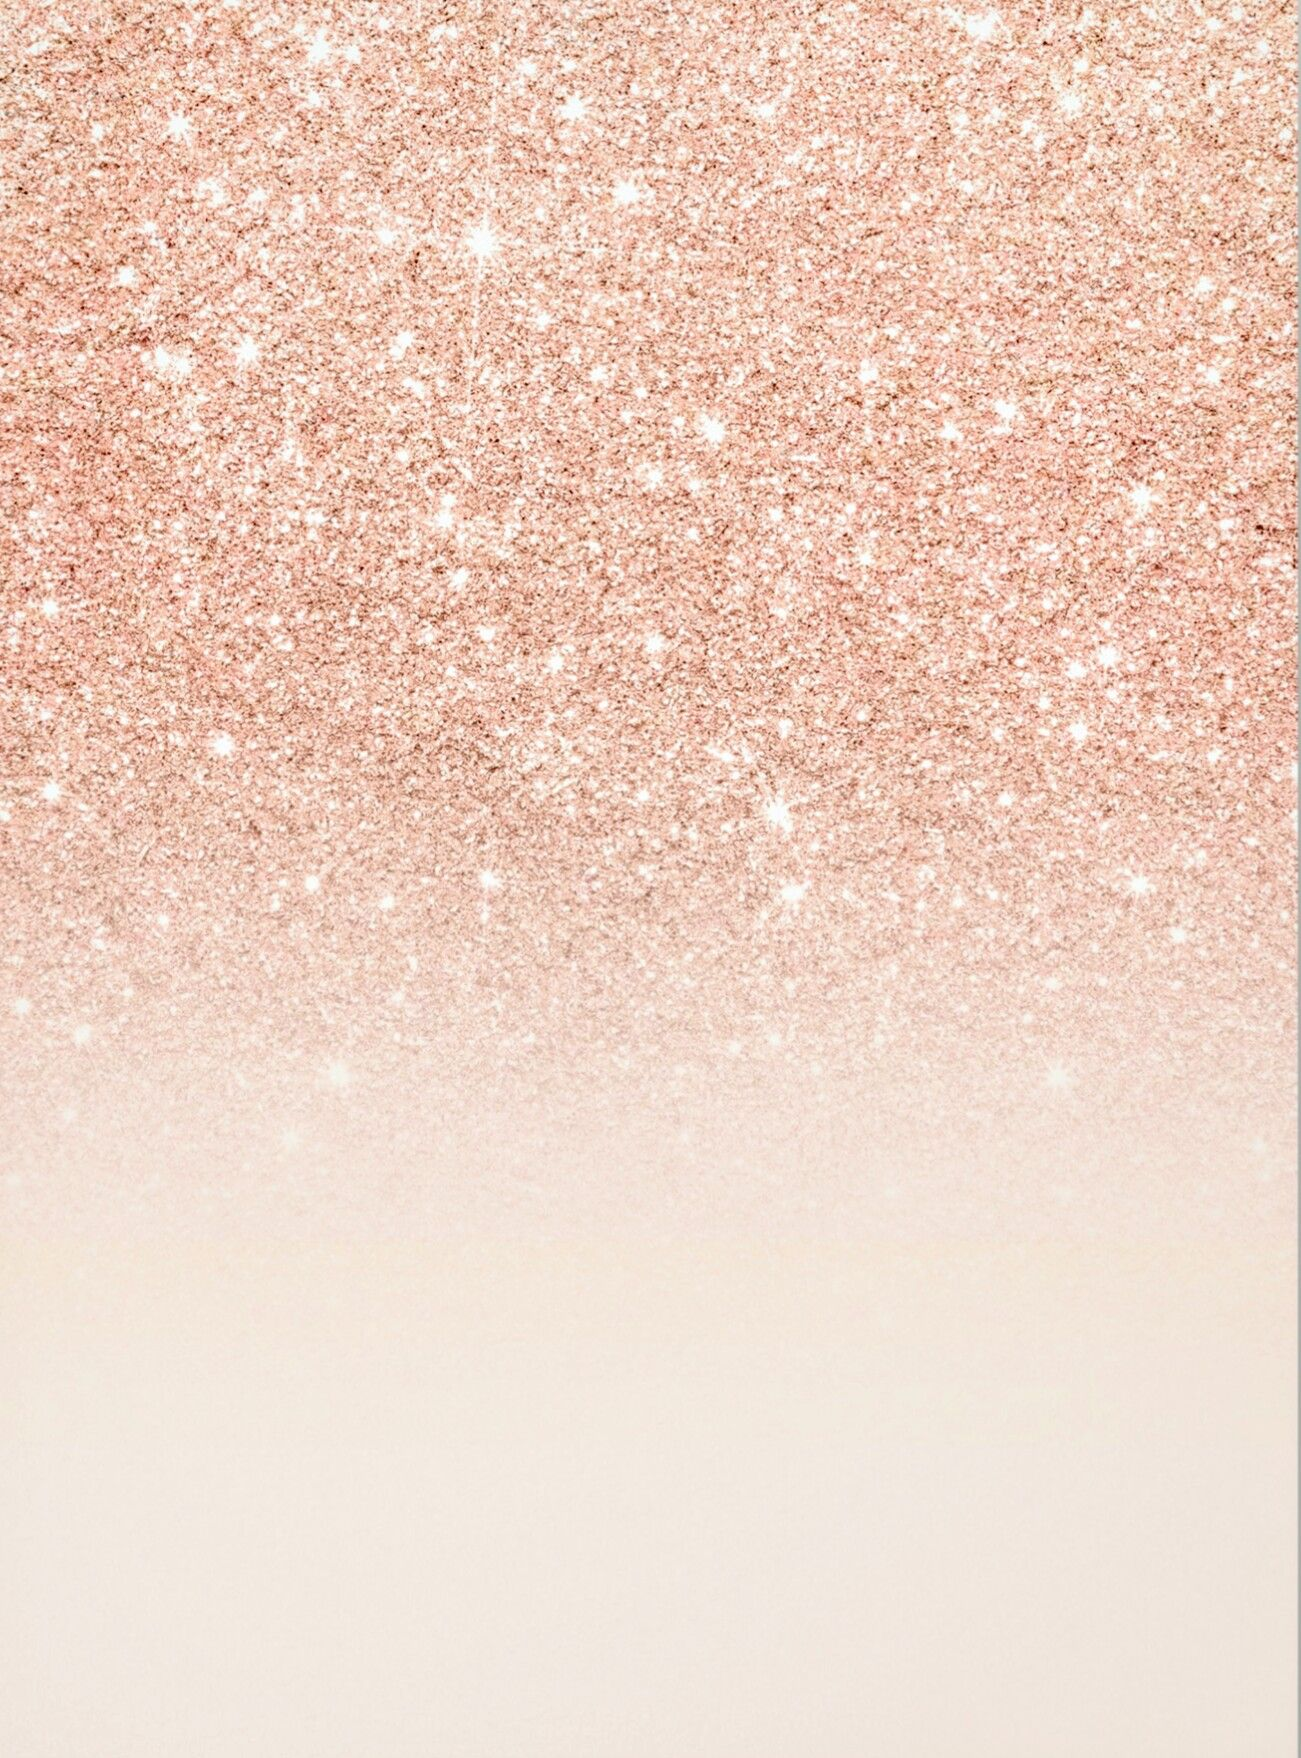 Pin By Edlyn Flowers On Wallpaper Rose Gold Wallpaper Gold Wallpaper Background Iphone Wallpaper Glitter